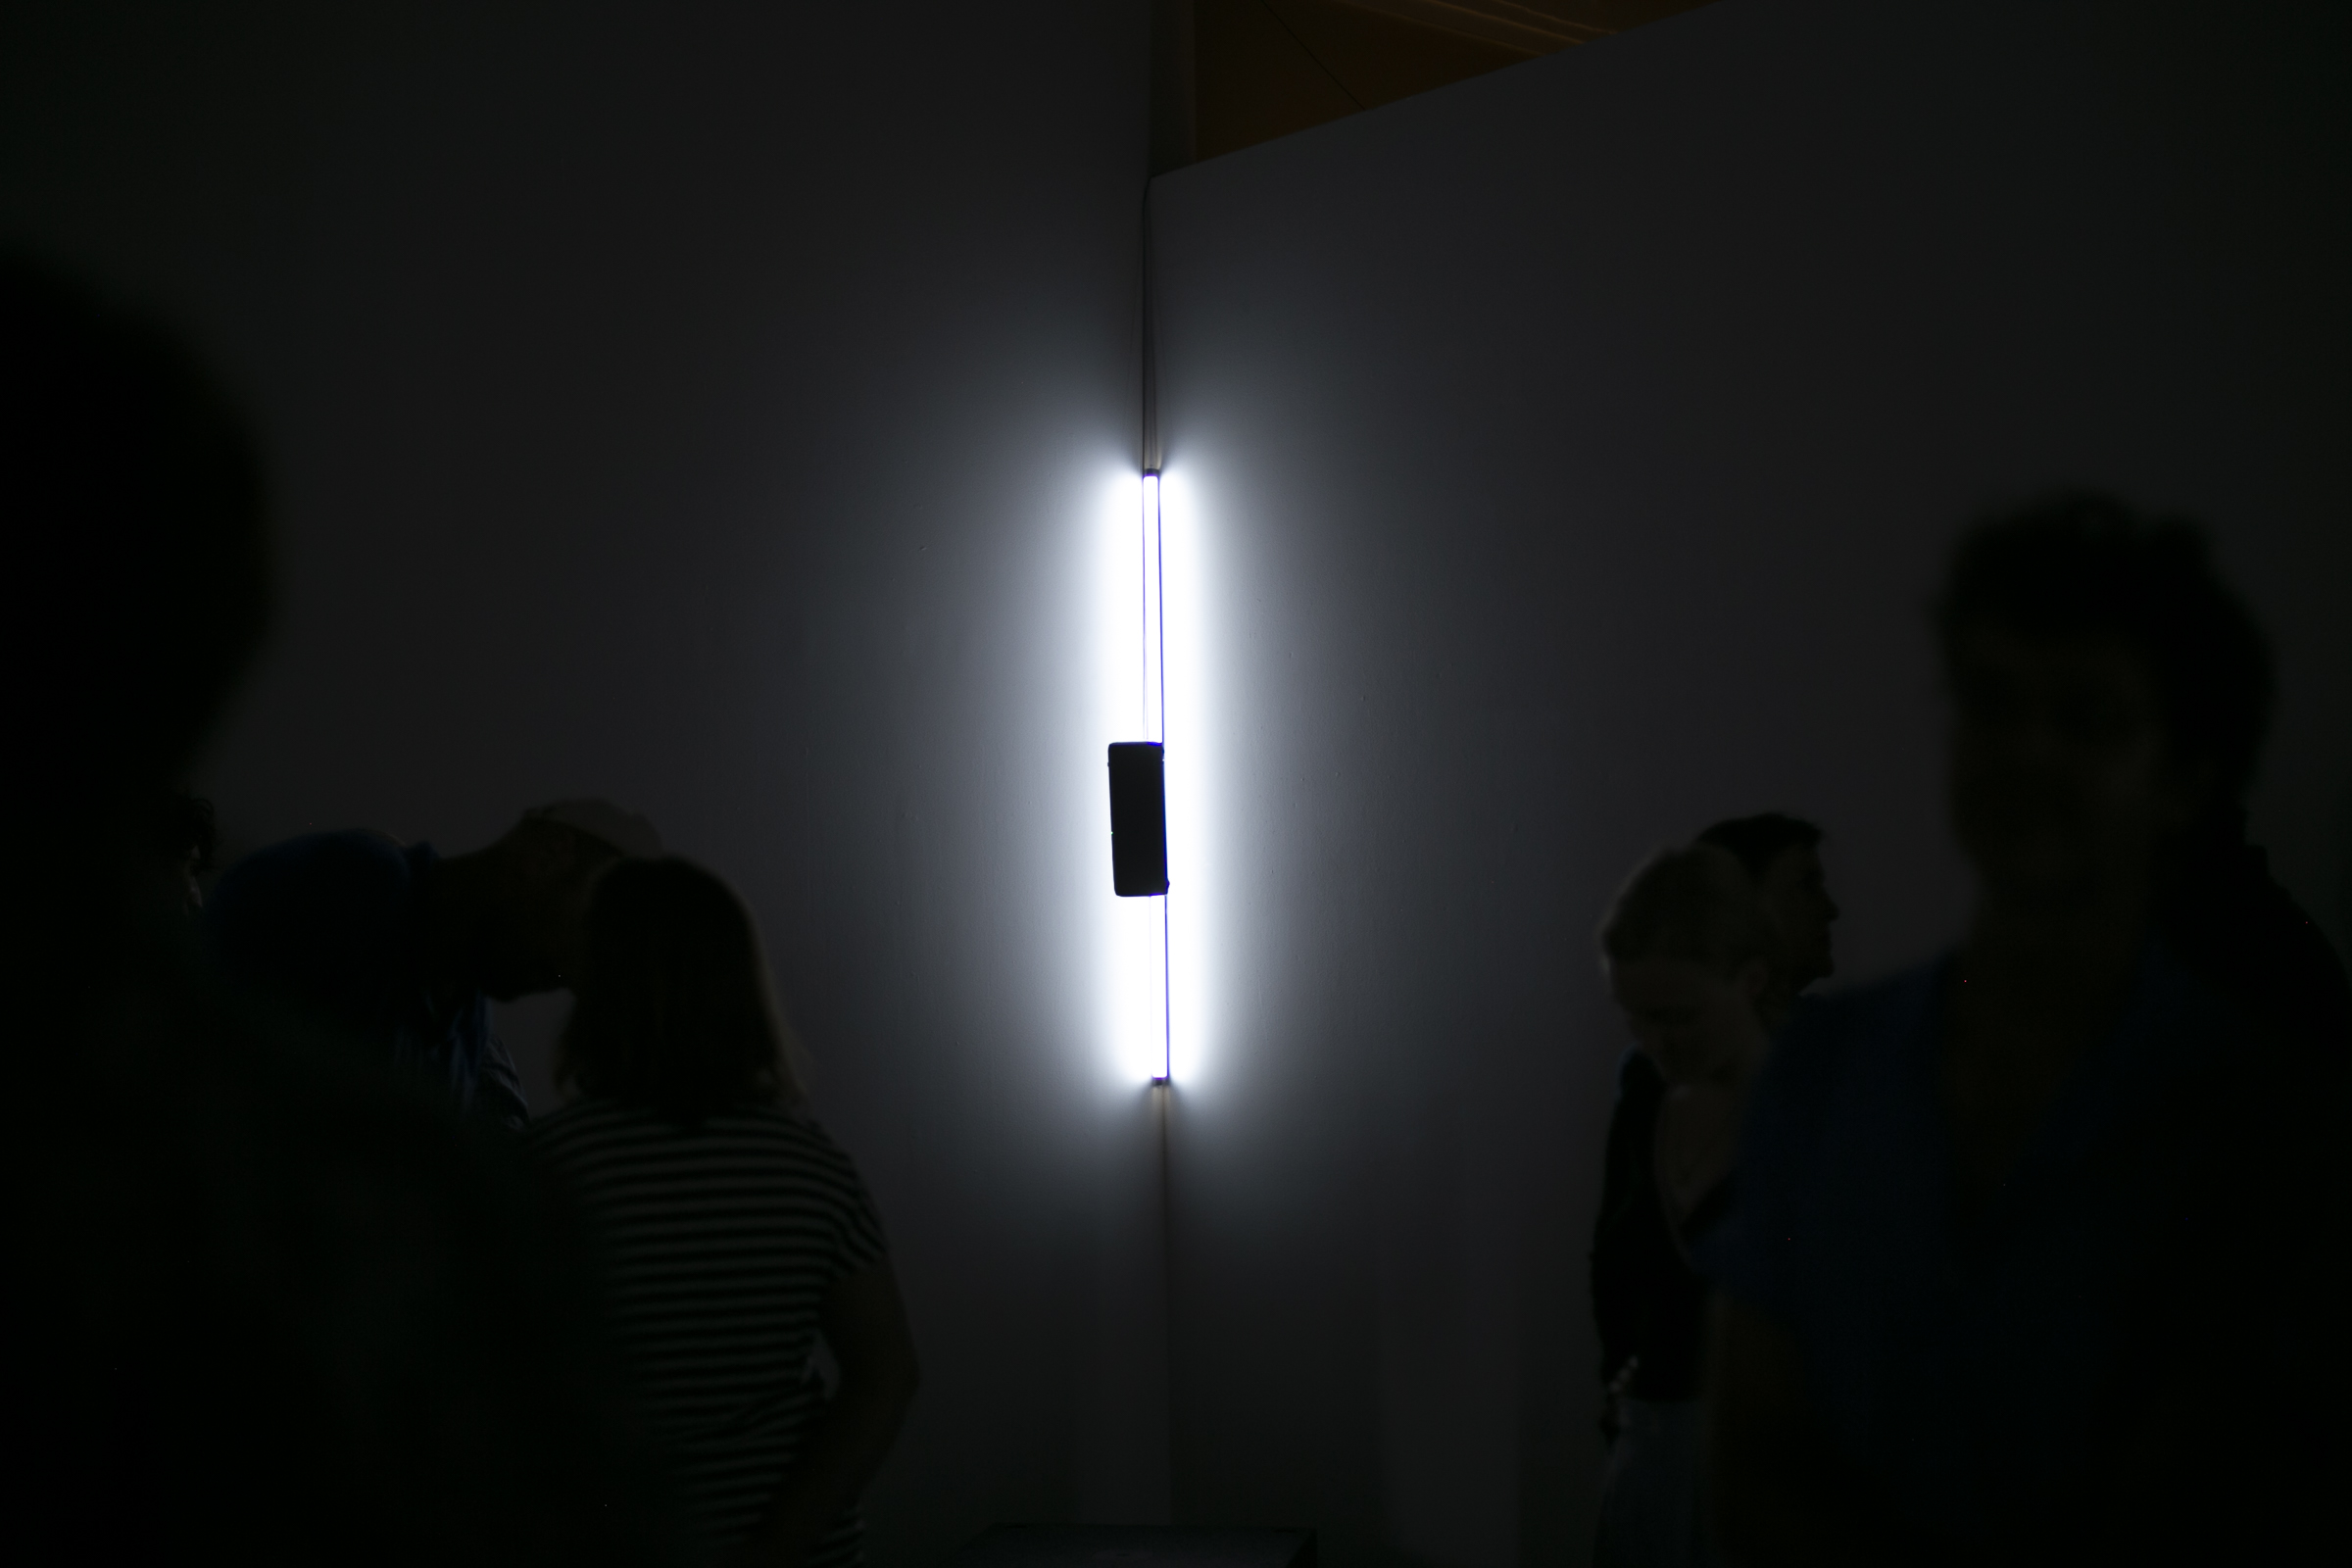 Liminalities , Revolve, Asheville, NC (2018)   An immersive 5.2 audio installation focused on articulating our embeddedness within geophysical and atmospheric vibrations. Very Low Frequency (VLF) electromagnetic waves from the ionosphere and magnetosphere were transduced into acoustic waves and broadcast in the listening space. This was combined with natural infrasonic emissions: 'tactile' sounds which are felt more than heard. These nonhuman forces, always already surging and resonating through us, articulate the physical cusp of both the sensory and the epistemic, as they impinge upon the liminal regions at the cusp of human perception and familiarity. As shadows of distant natural events, data from these hidden forces is used to monitor the effects of anthropogenic climate change. As these forces are rendered sensible, the natural encroaches upon the social, as the global terrain acts as a vibratory beacon allowing us to experience the gestures of the earth. In closing the distance between percipient and event,  Liminalities  asks how radical of an act of intimacy it might be to open ourselves up and feel the collective din of geophysical forces, as a process of  becoming-storm . The opening night included a reading of my essay titled after the piece, and a performance by Berlin-based researcher, sound artist, and lecturer  Samuel Hertz .